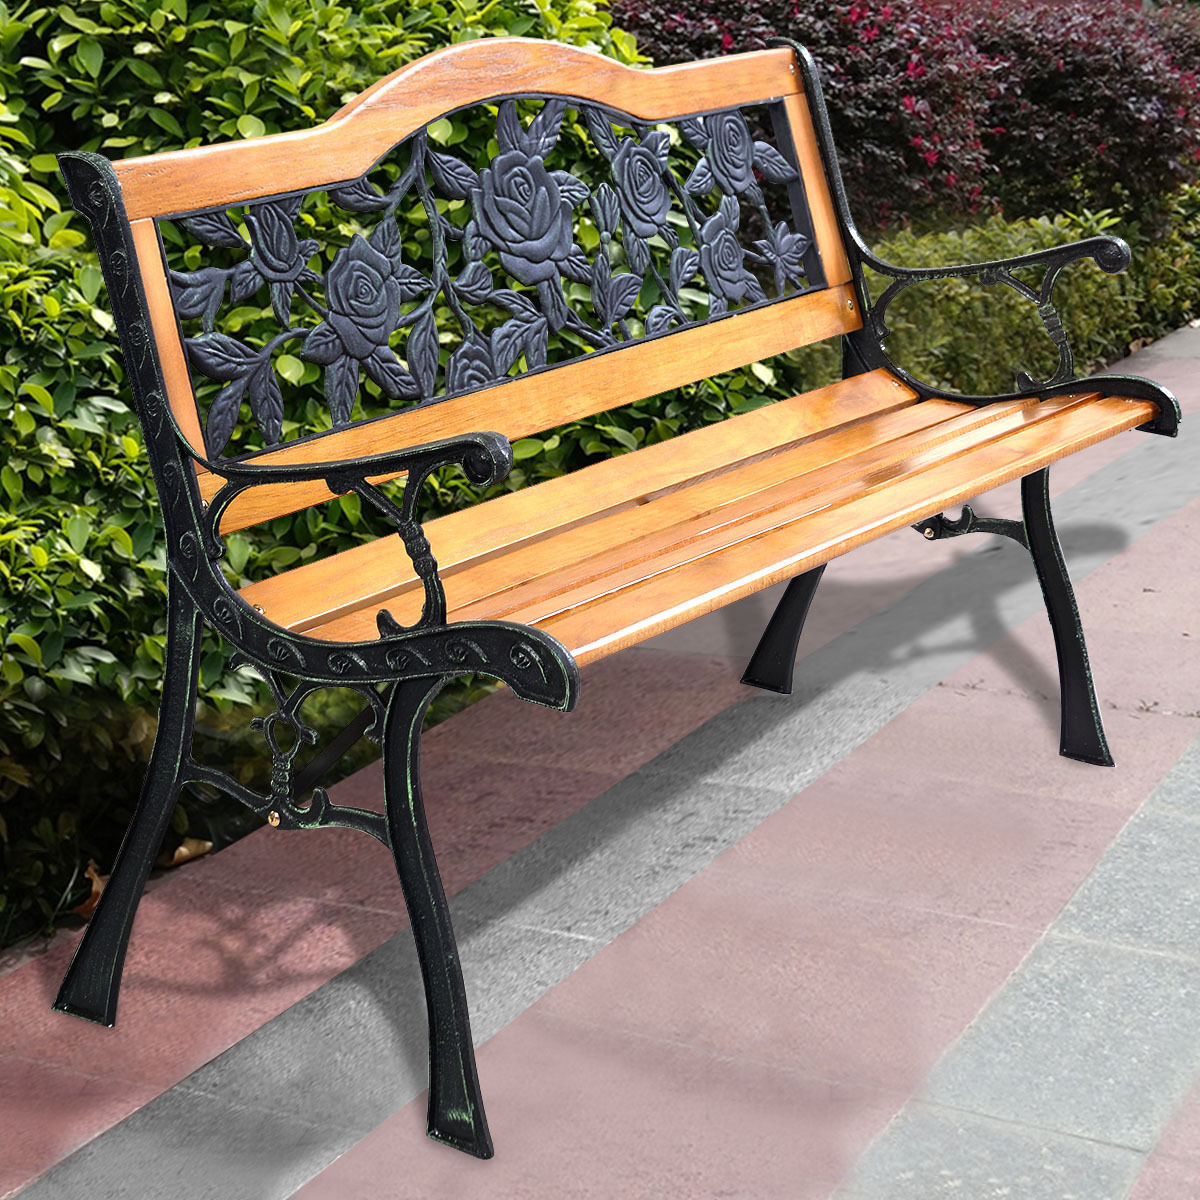 Outdoor Cast Iron Patio Bench Rose   Outdoor Benches   Outdoor Seating   Outdoor  Furniture   Furniture